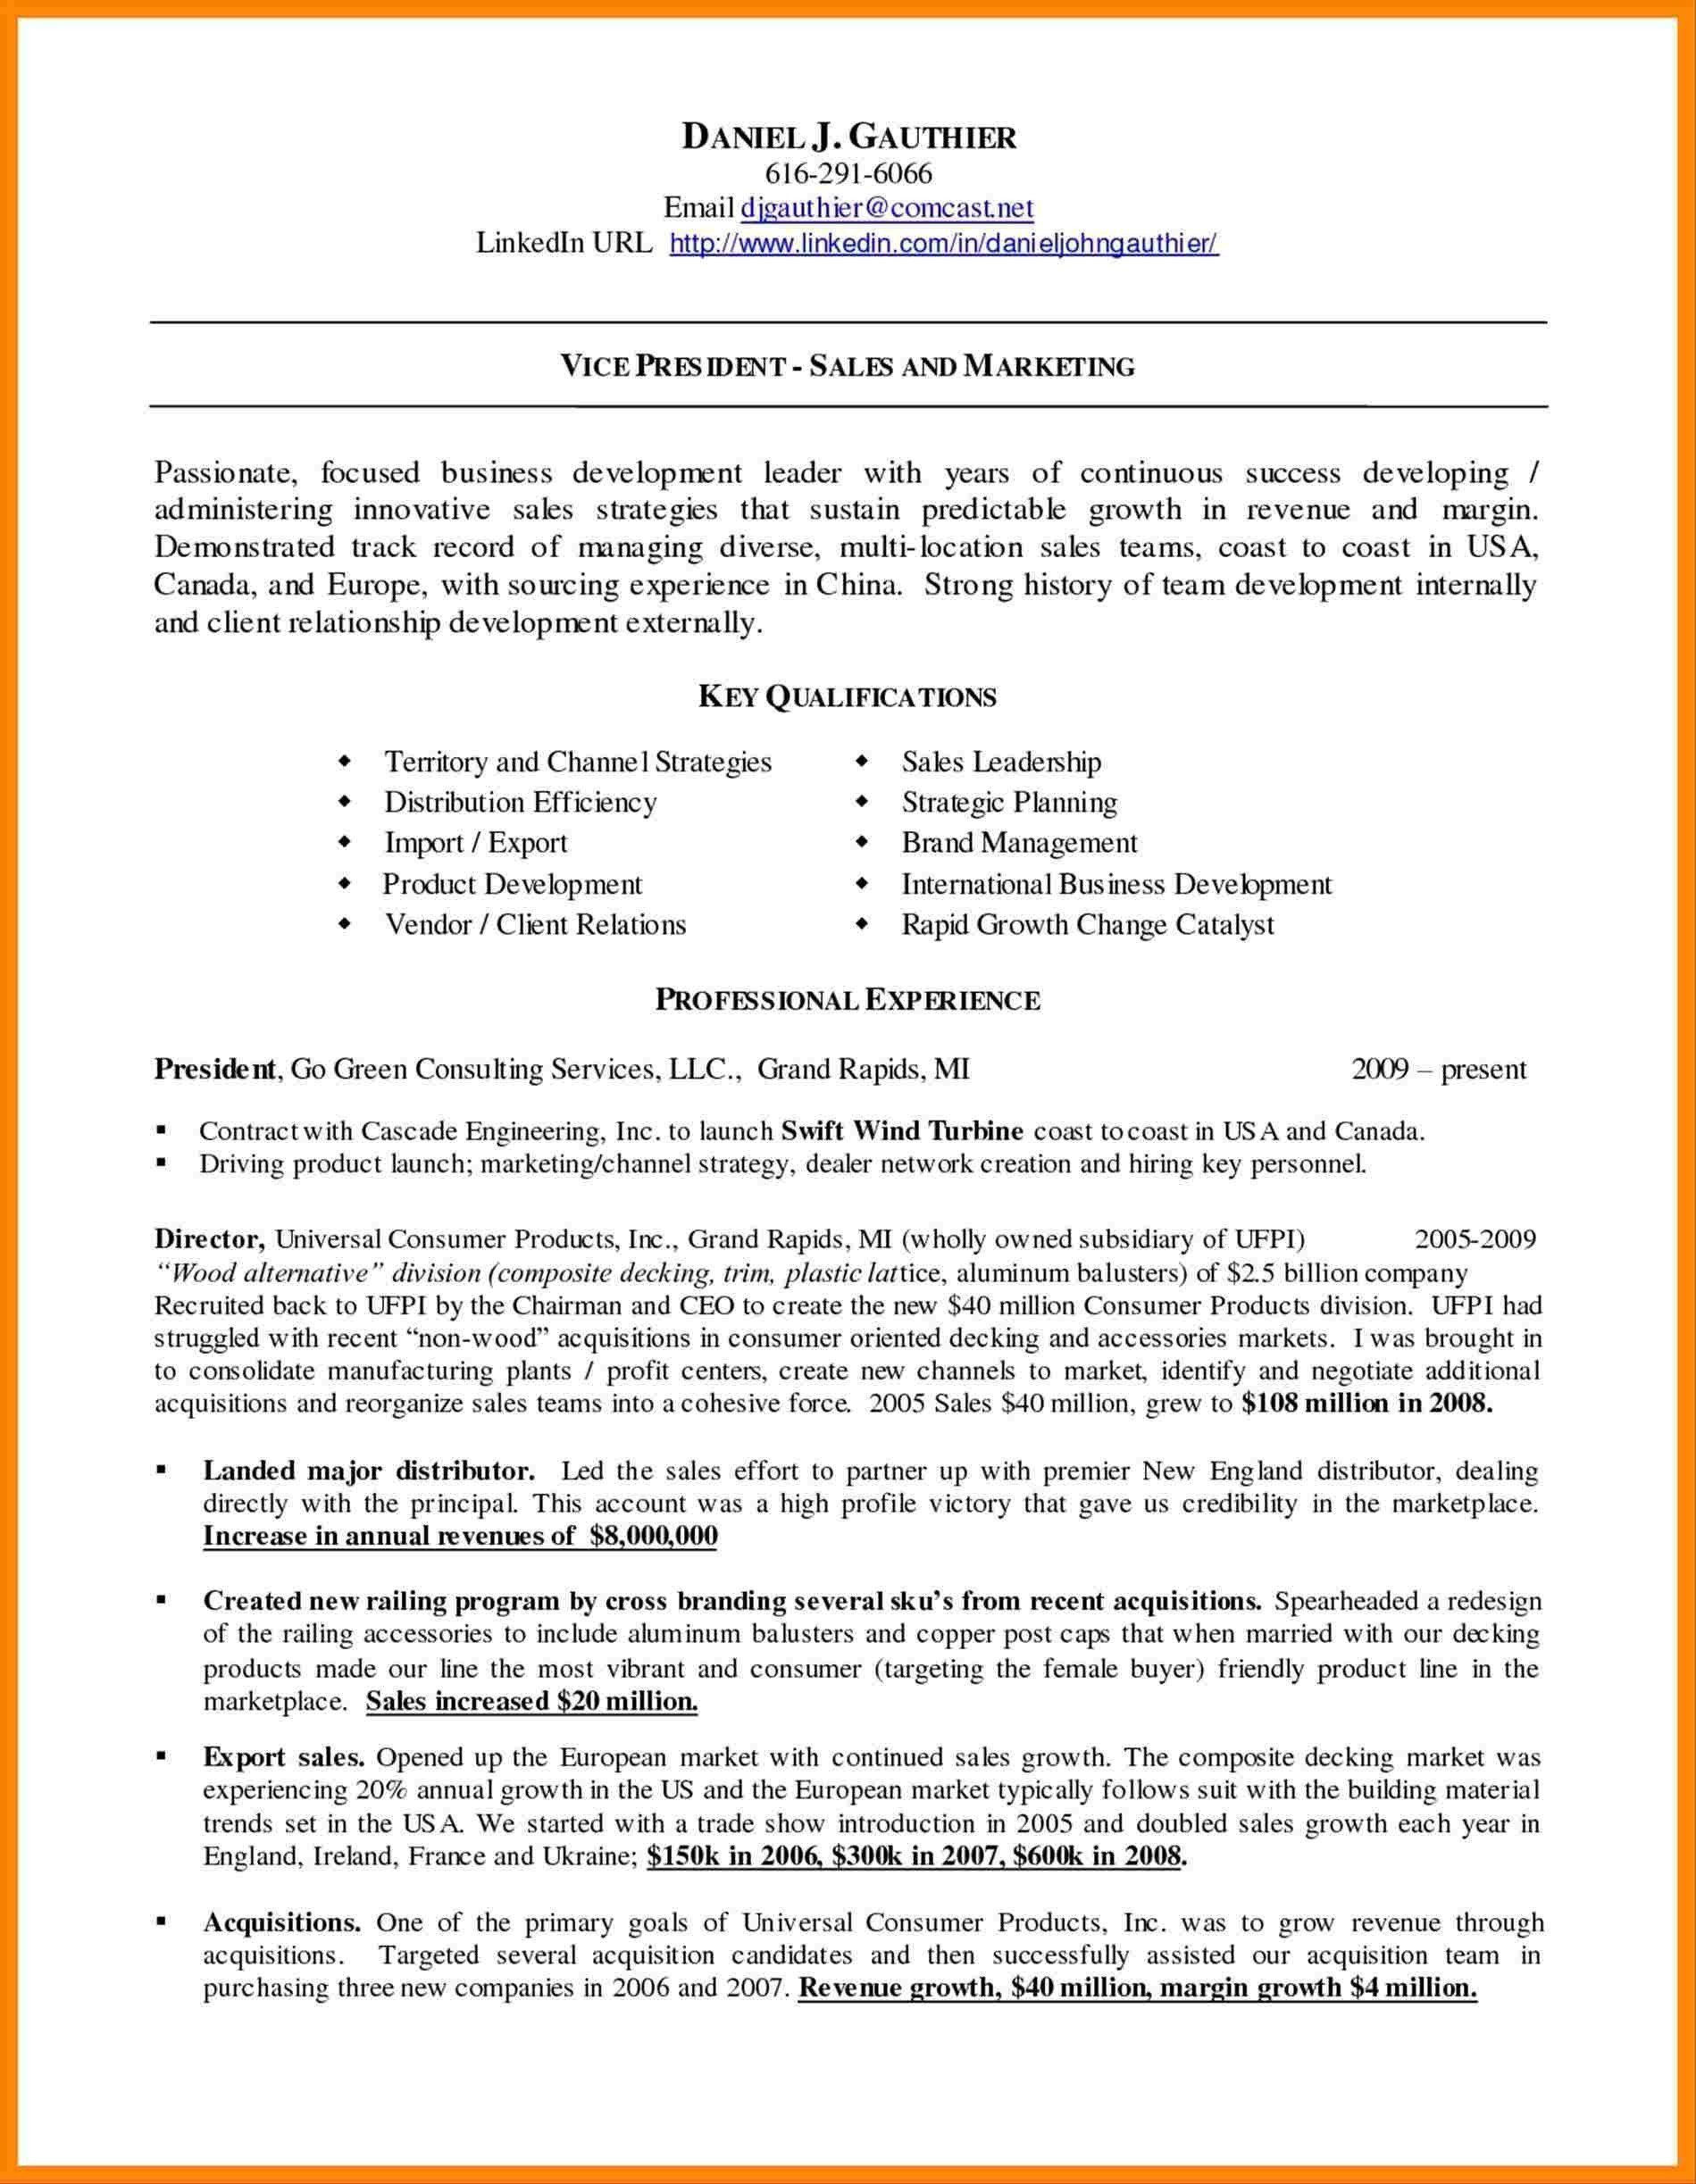 Linkedin Link On Resume Category Resume 2 Teacher Resume Template Free Teacher Resume Template Resume Template Examples